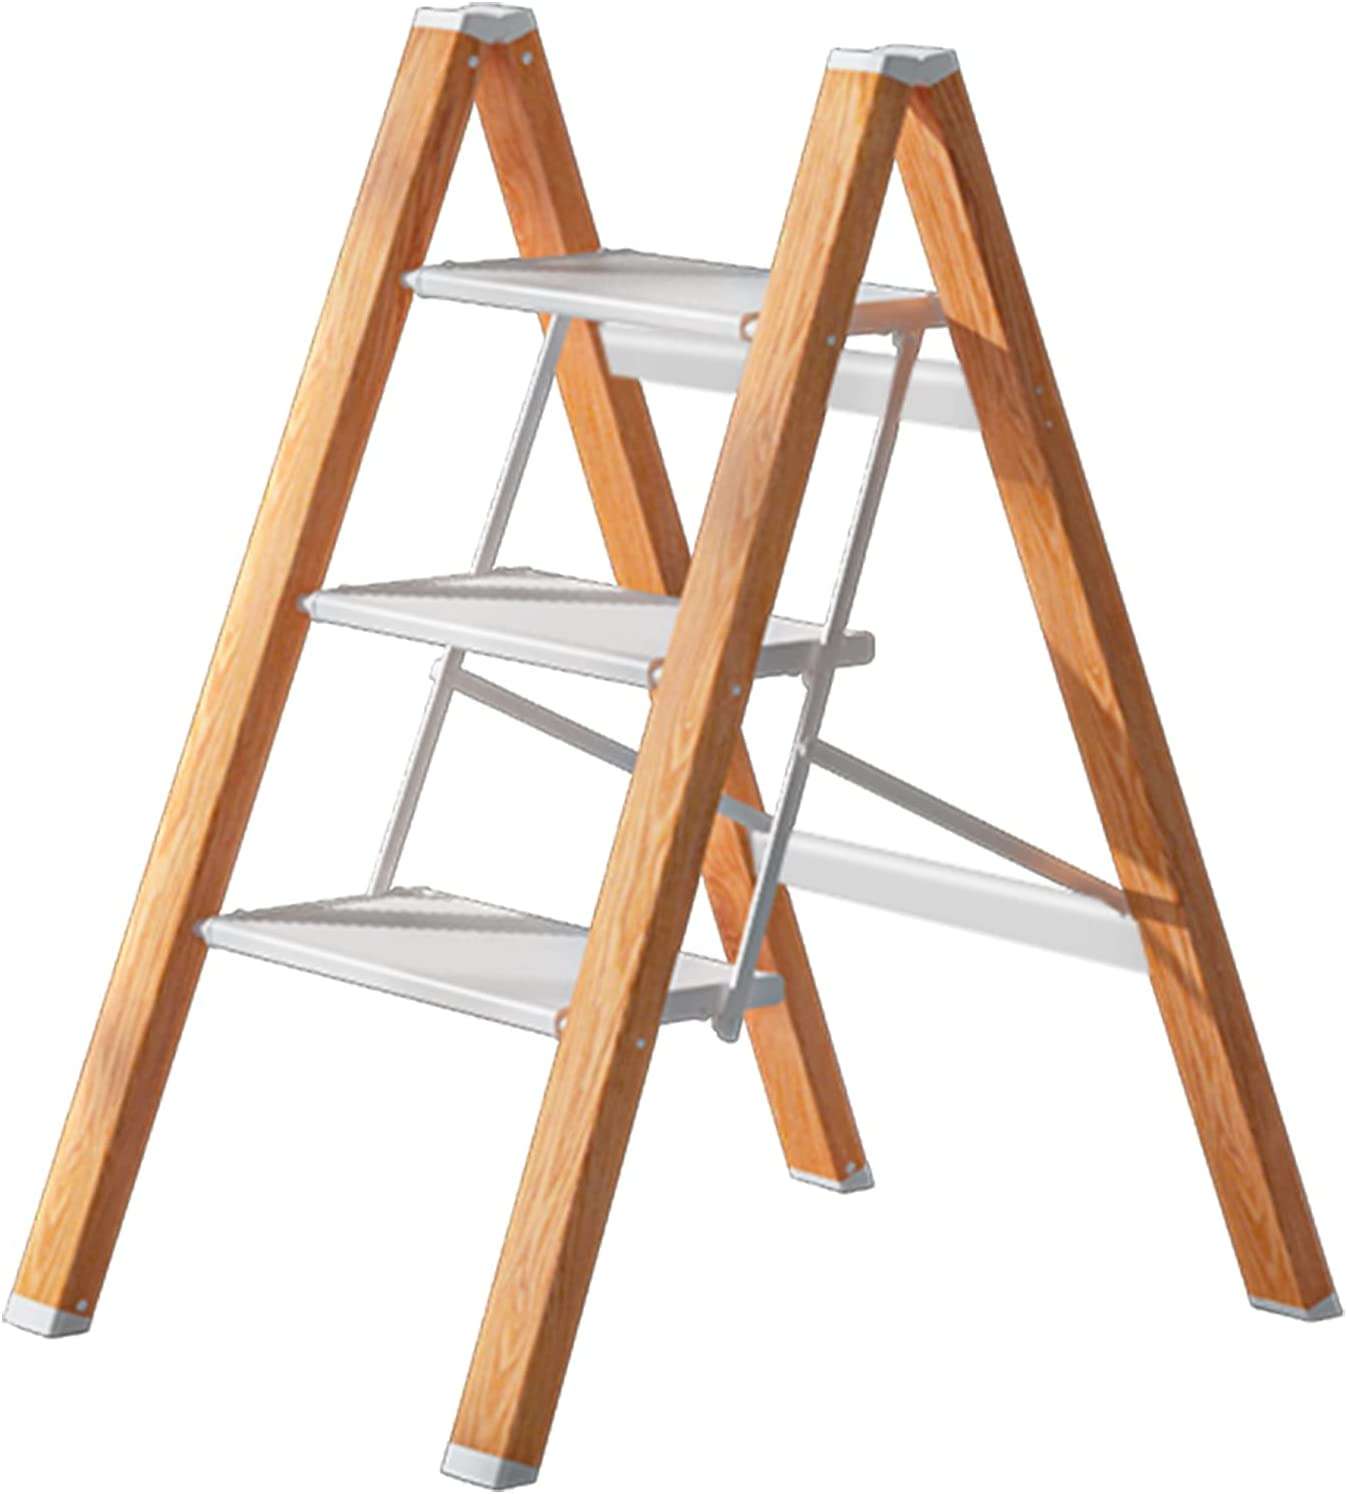 Top 8 Safety Step Ladders for Seniors [Expert's Choice - 2021] 6